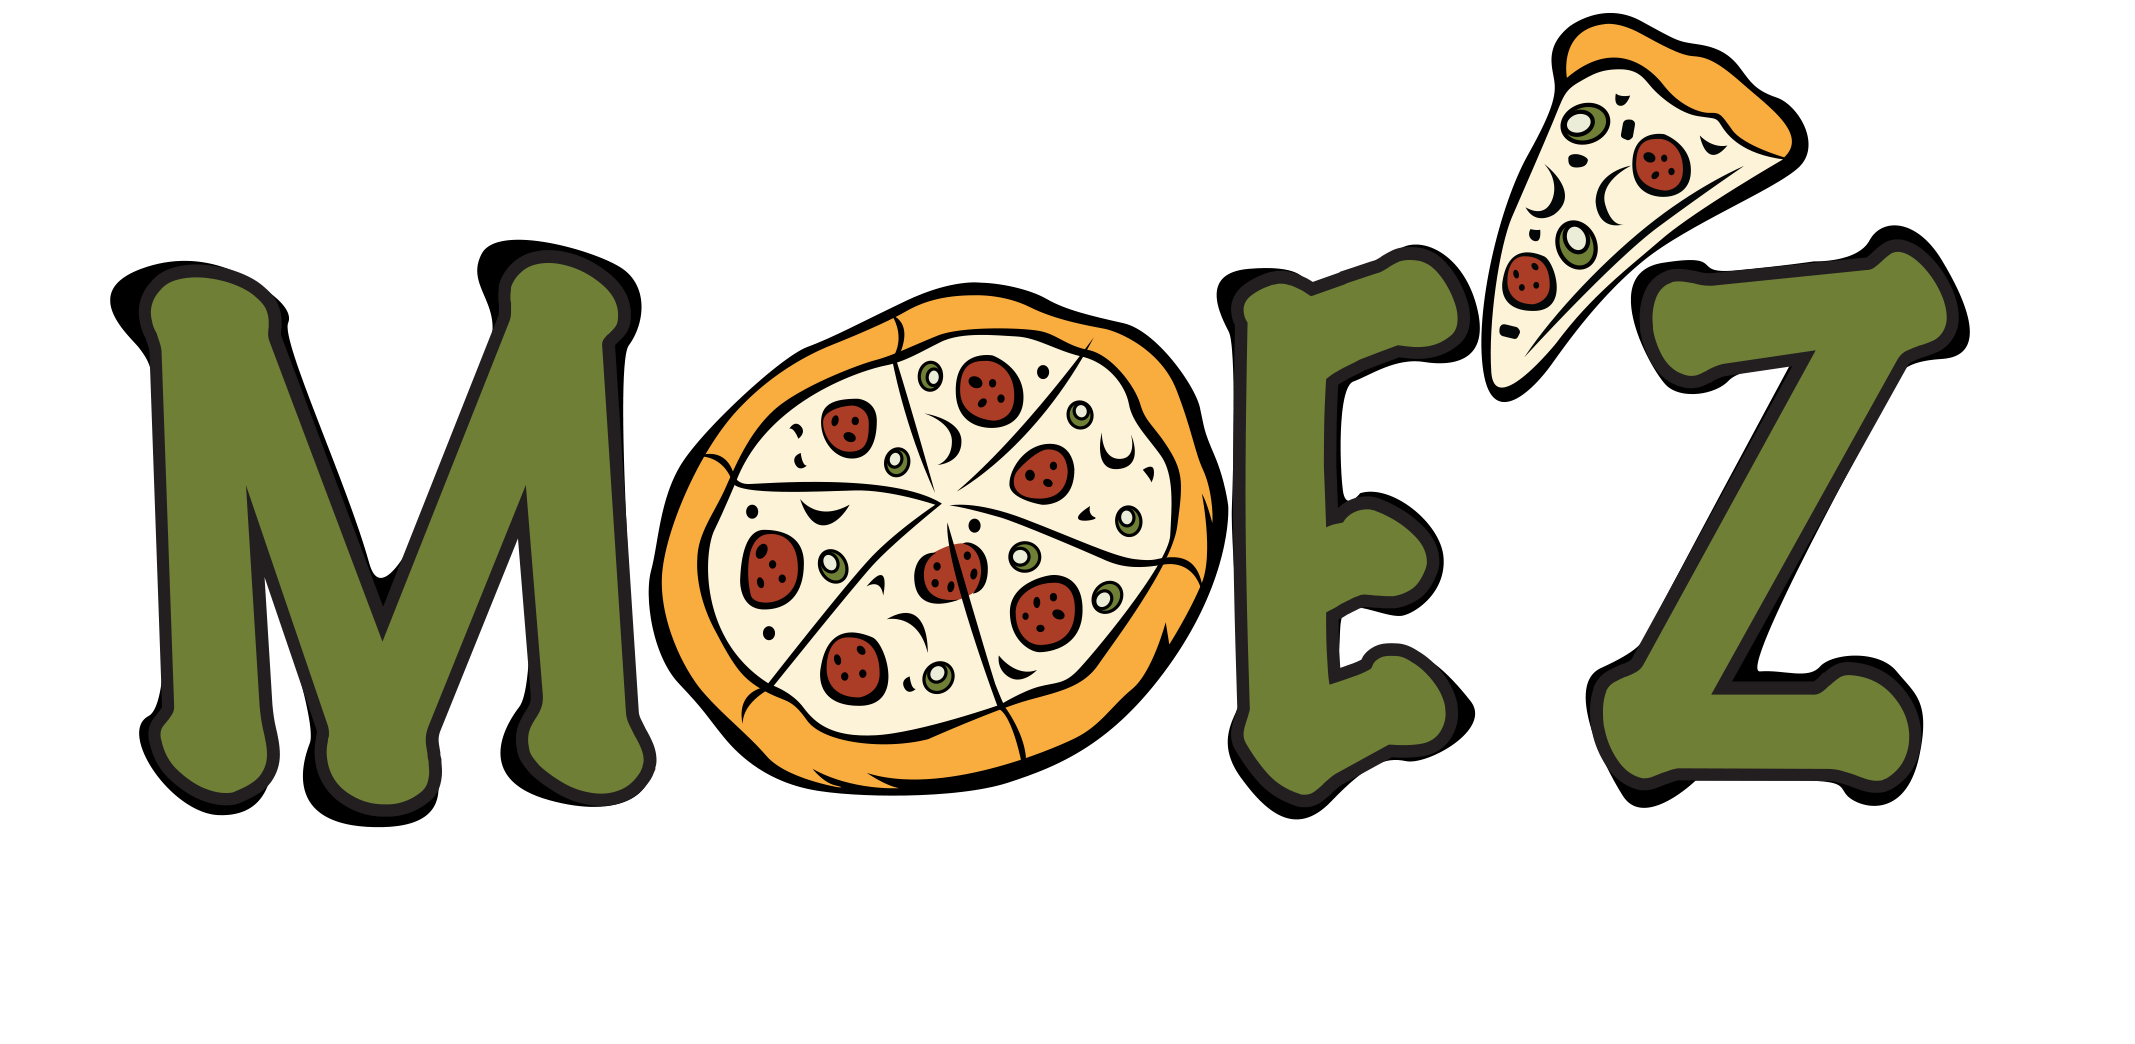 Dining clipart food catering. Best pizza restaurant italian